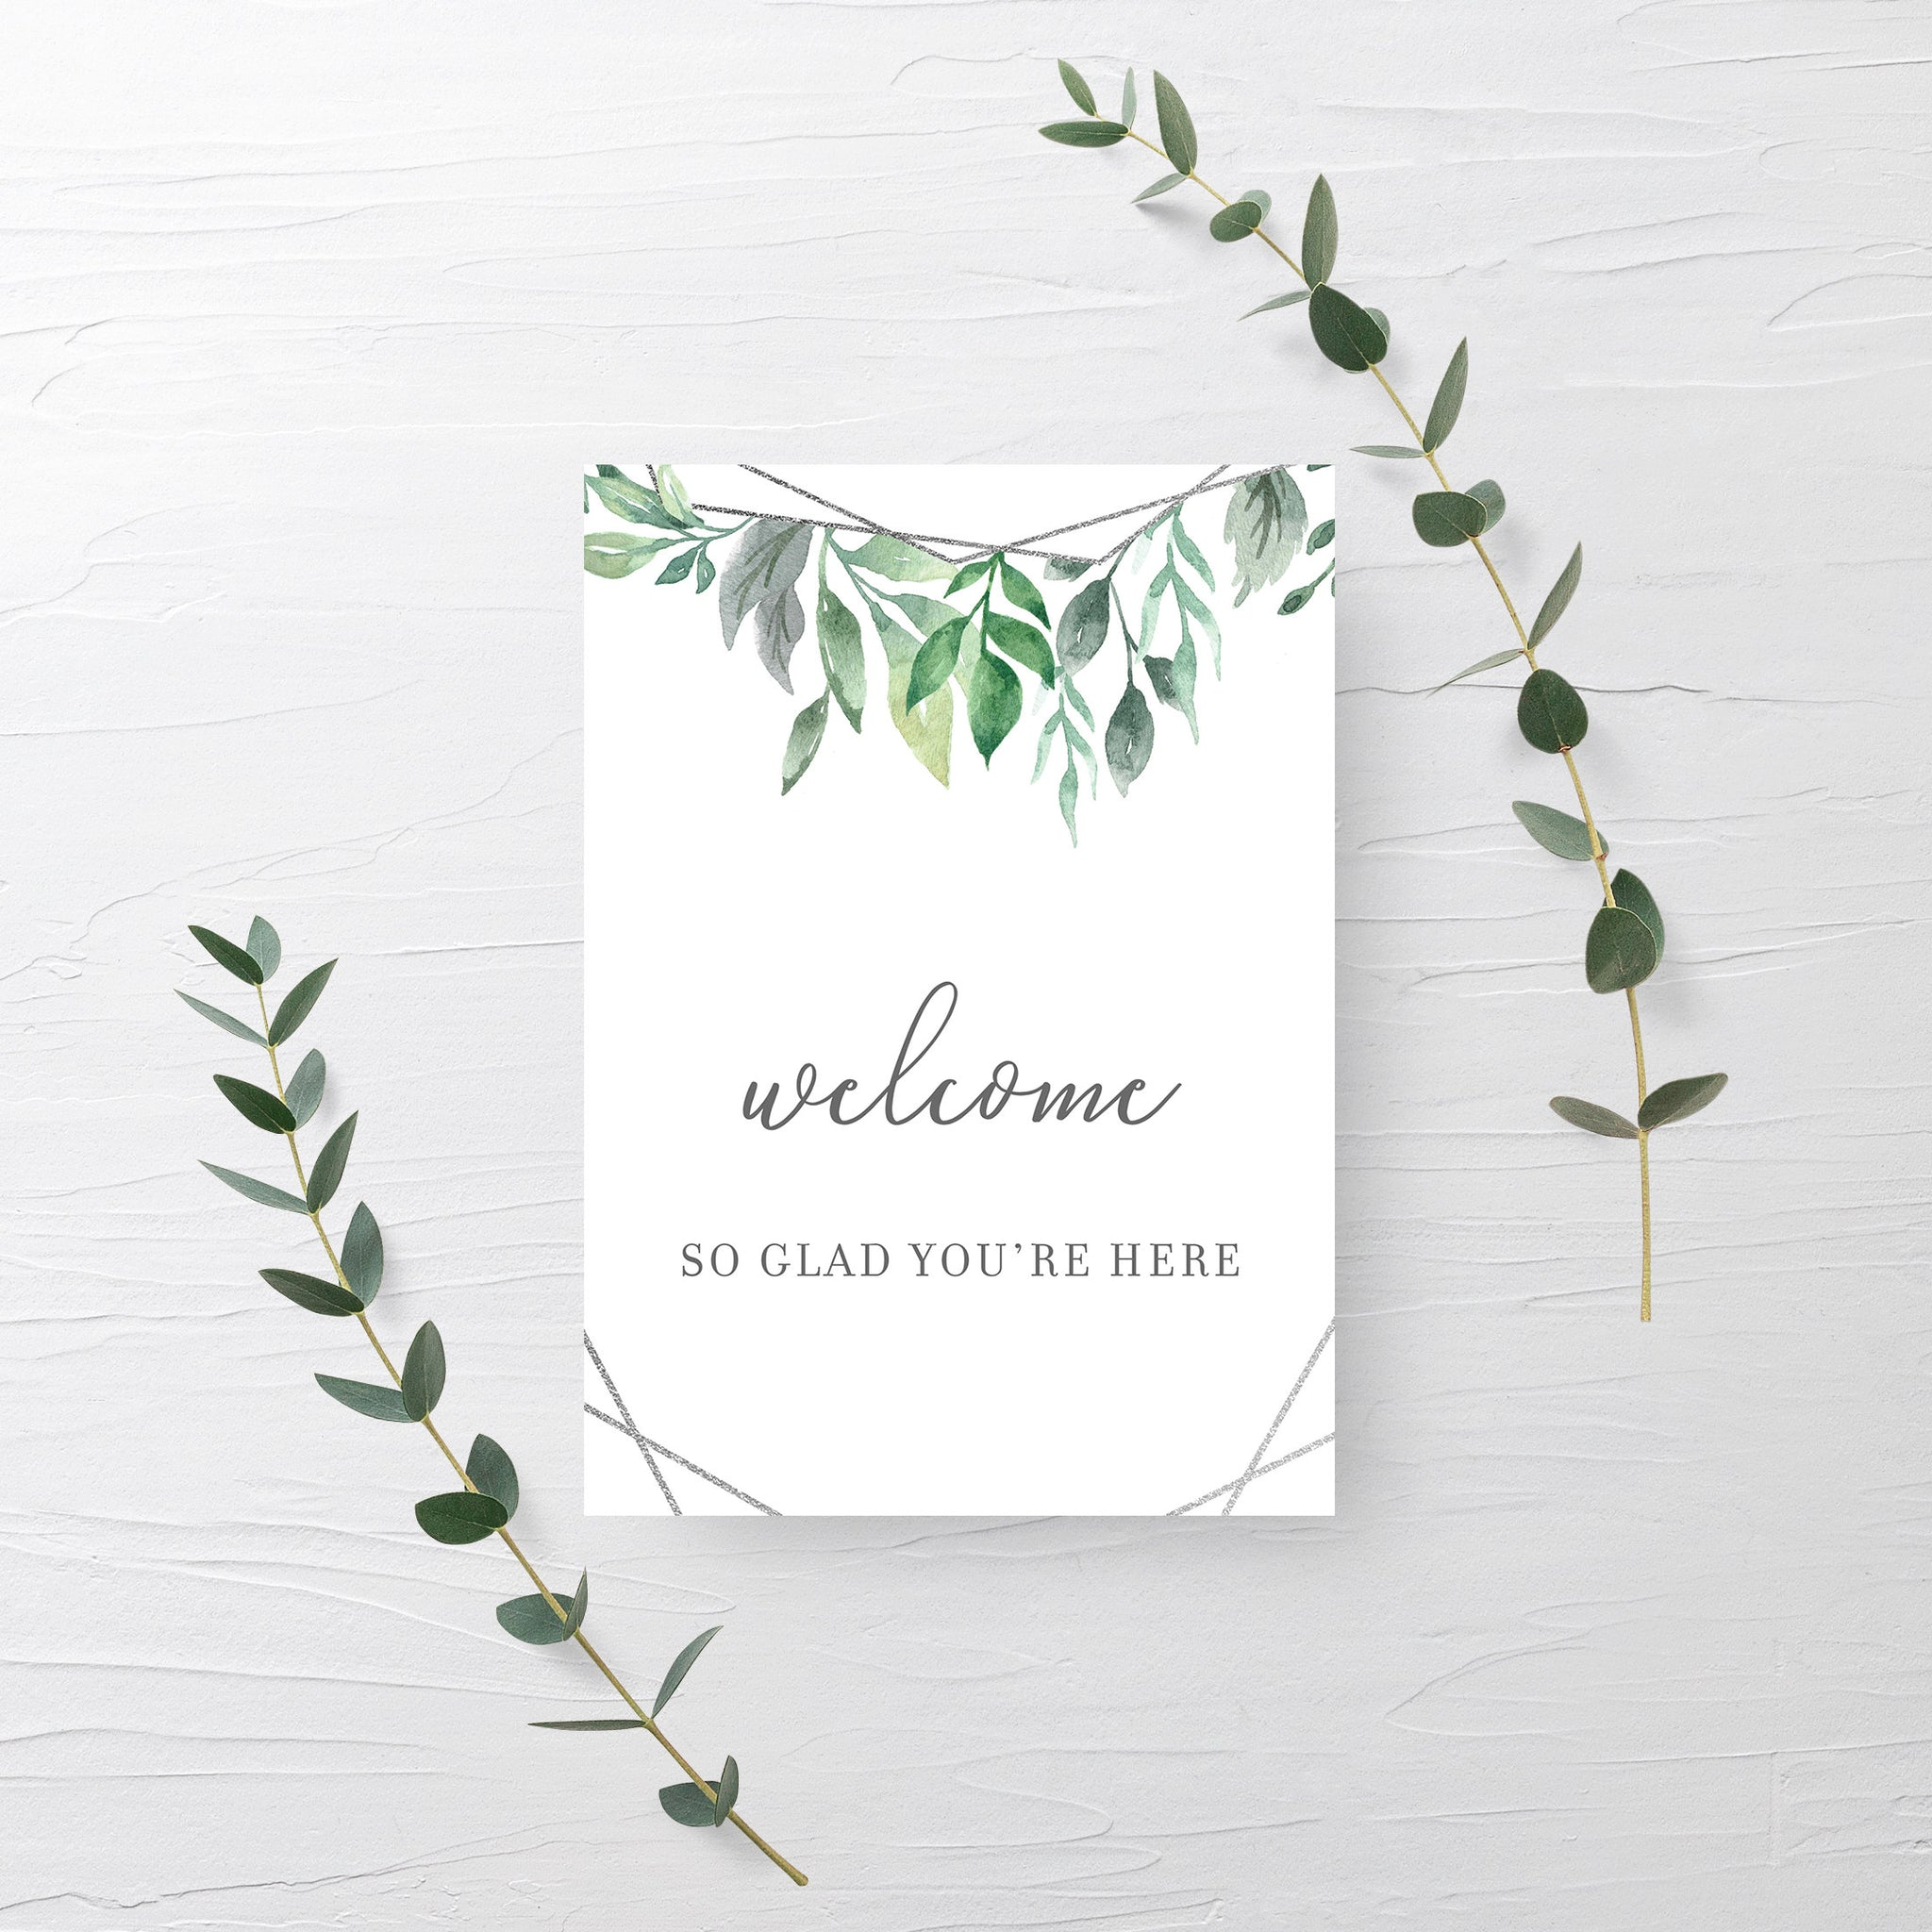 Geometric Silver Greenery Printable Welcome Sign INSTANT DOWNLOAD, Bridal Shower, Baby Shower, Wedding Decorations and Supplies - GFS100 - @PlumPolkaDot